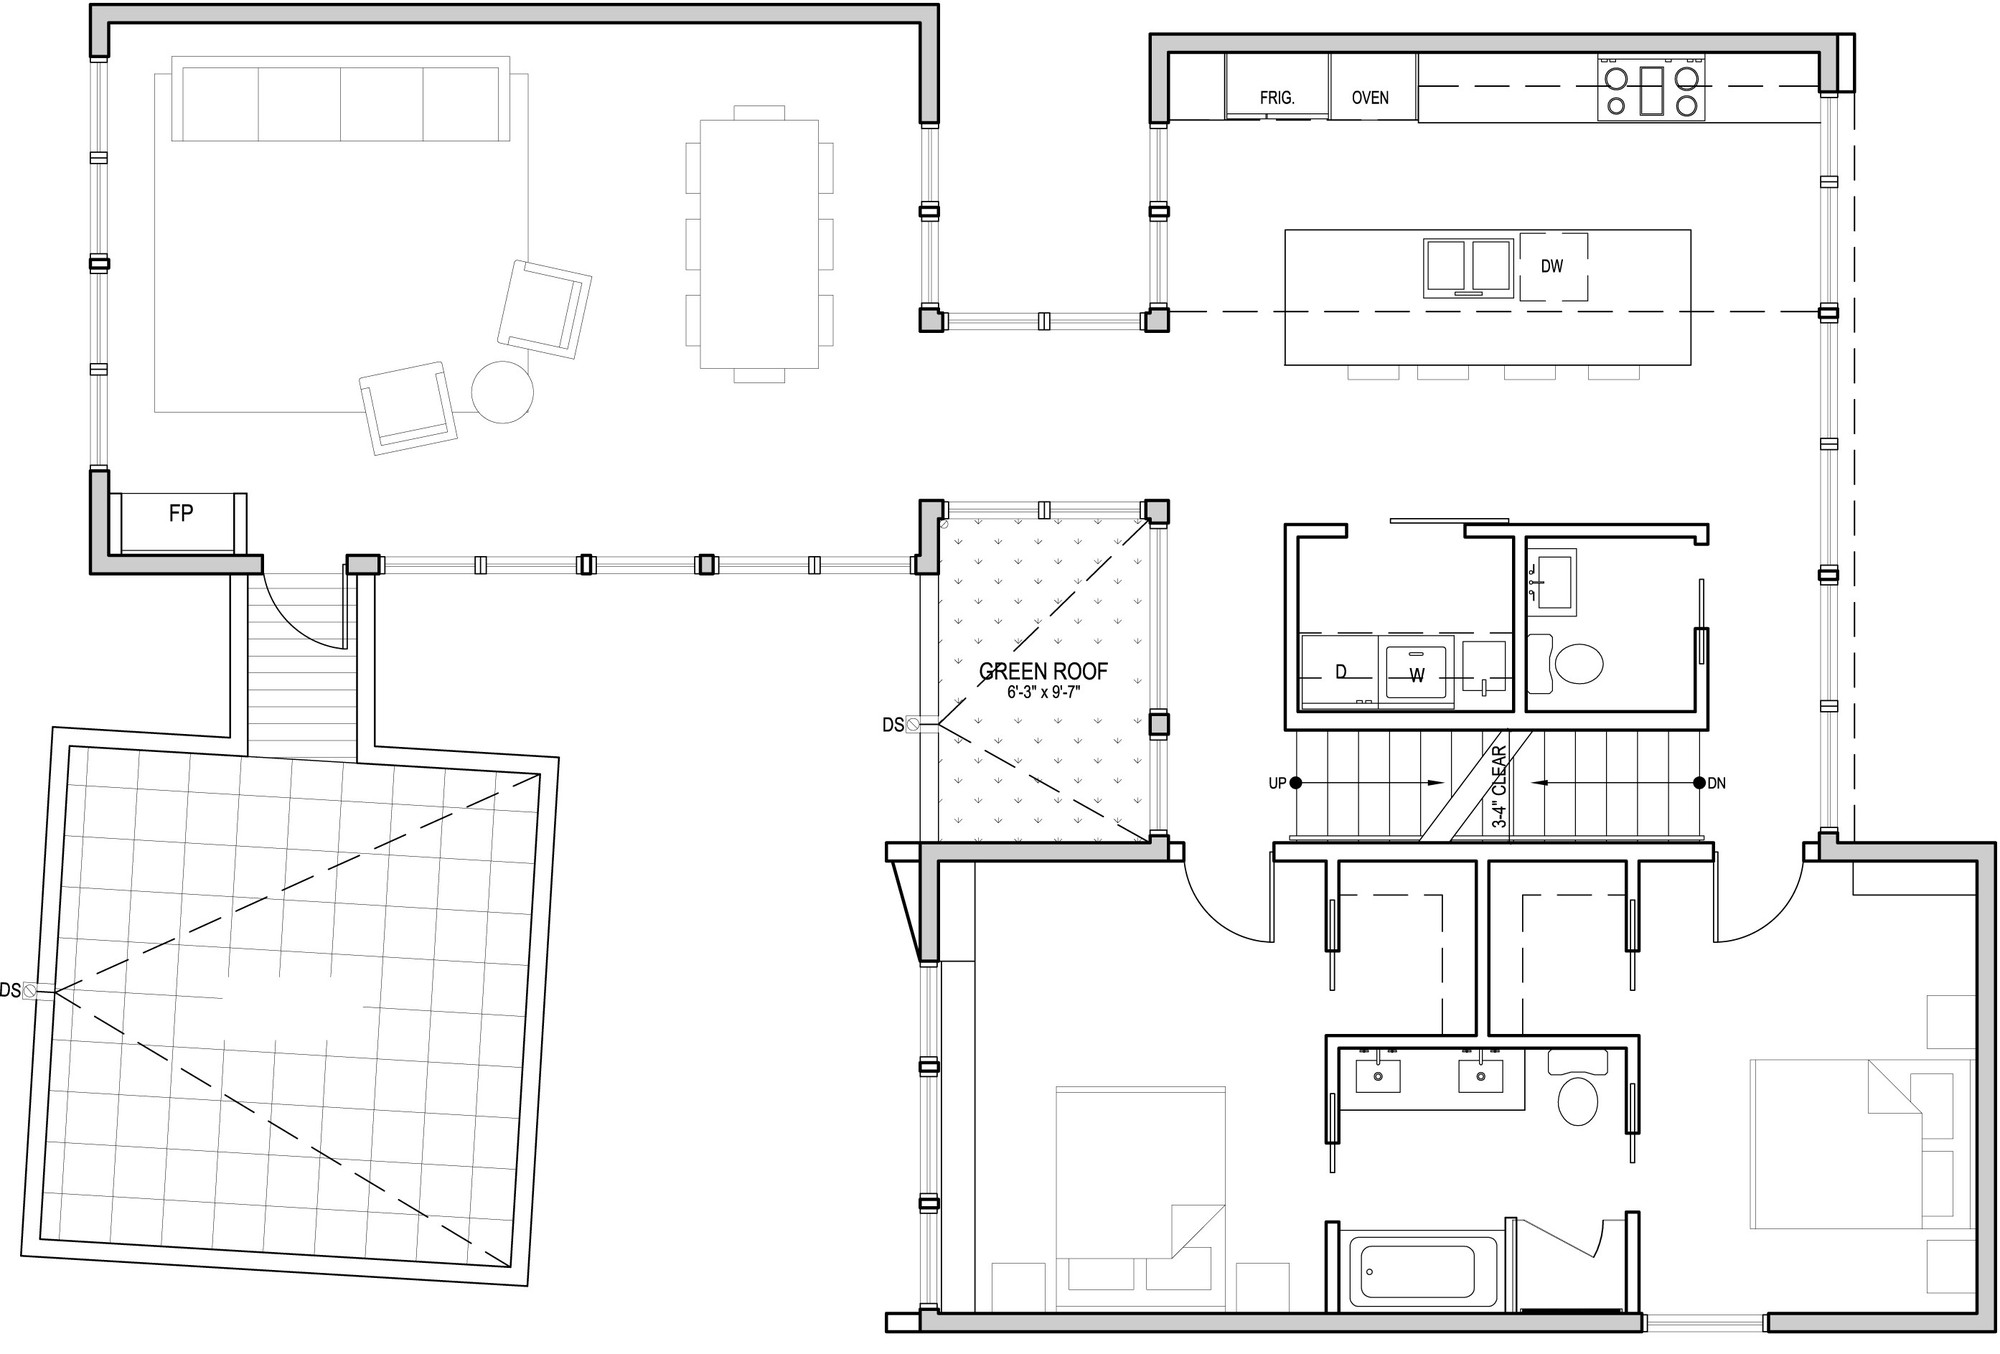 Aurea Residence,Second Floor Plan